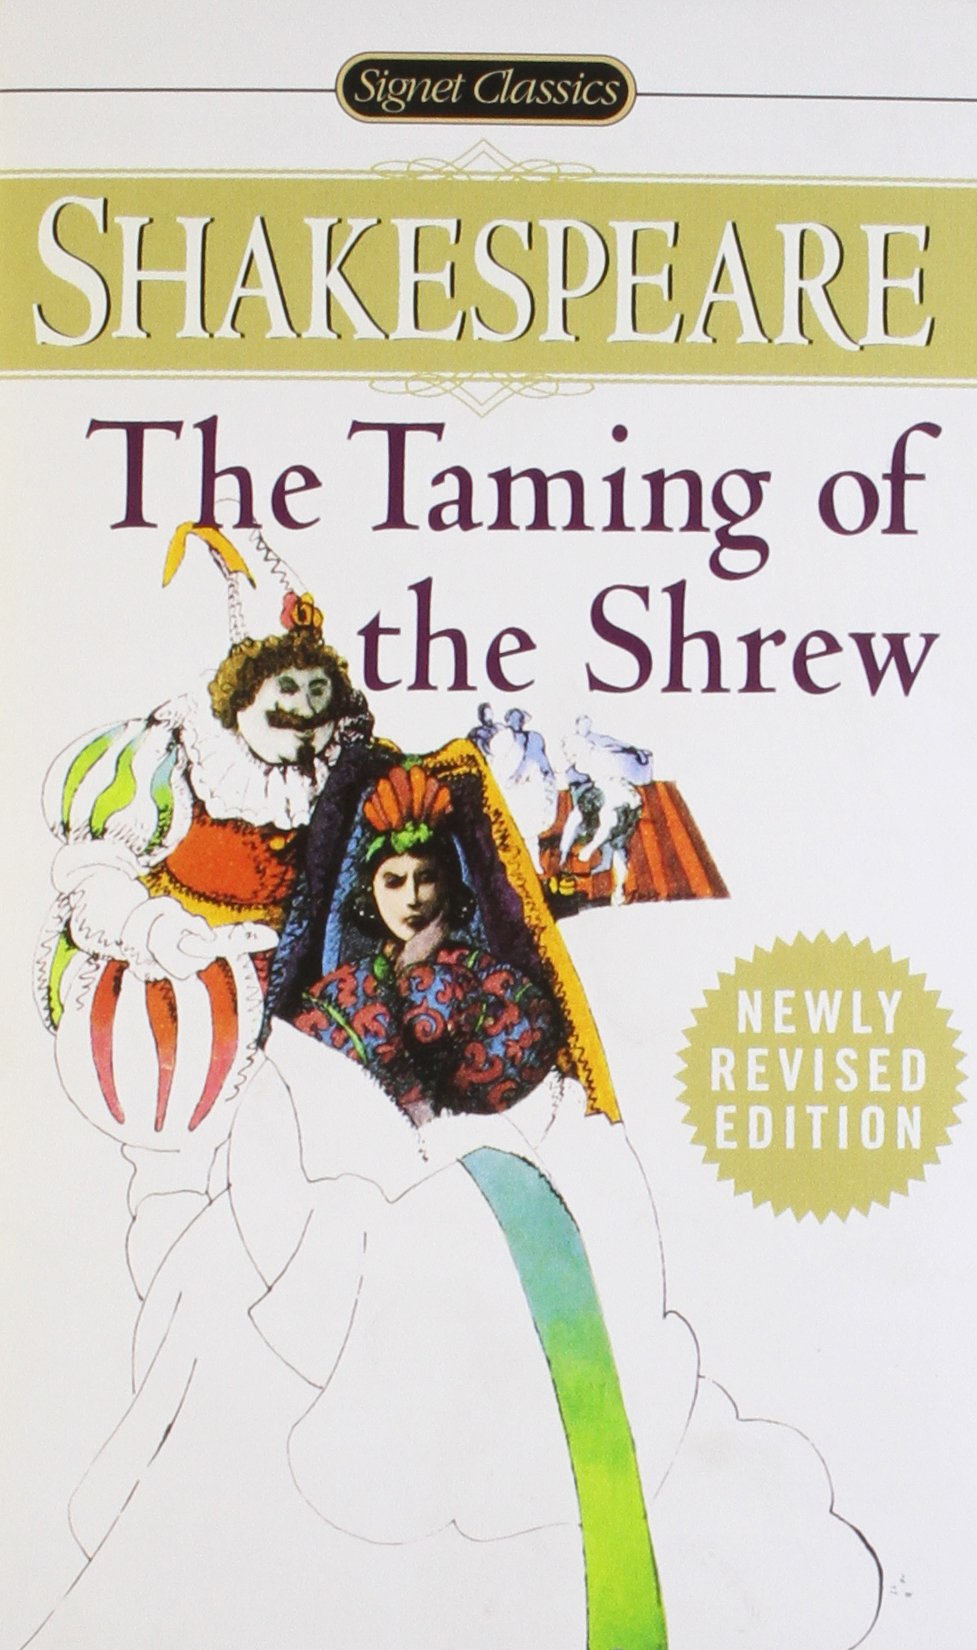 an overview of the taming of the shrew a play by william shakespeare An overview of the acts in taming of the shrew a play by william shakespeare paul d chan 9781856423618 1856423611 essential practice for healthcare assistants.